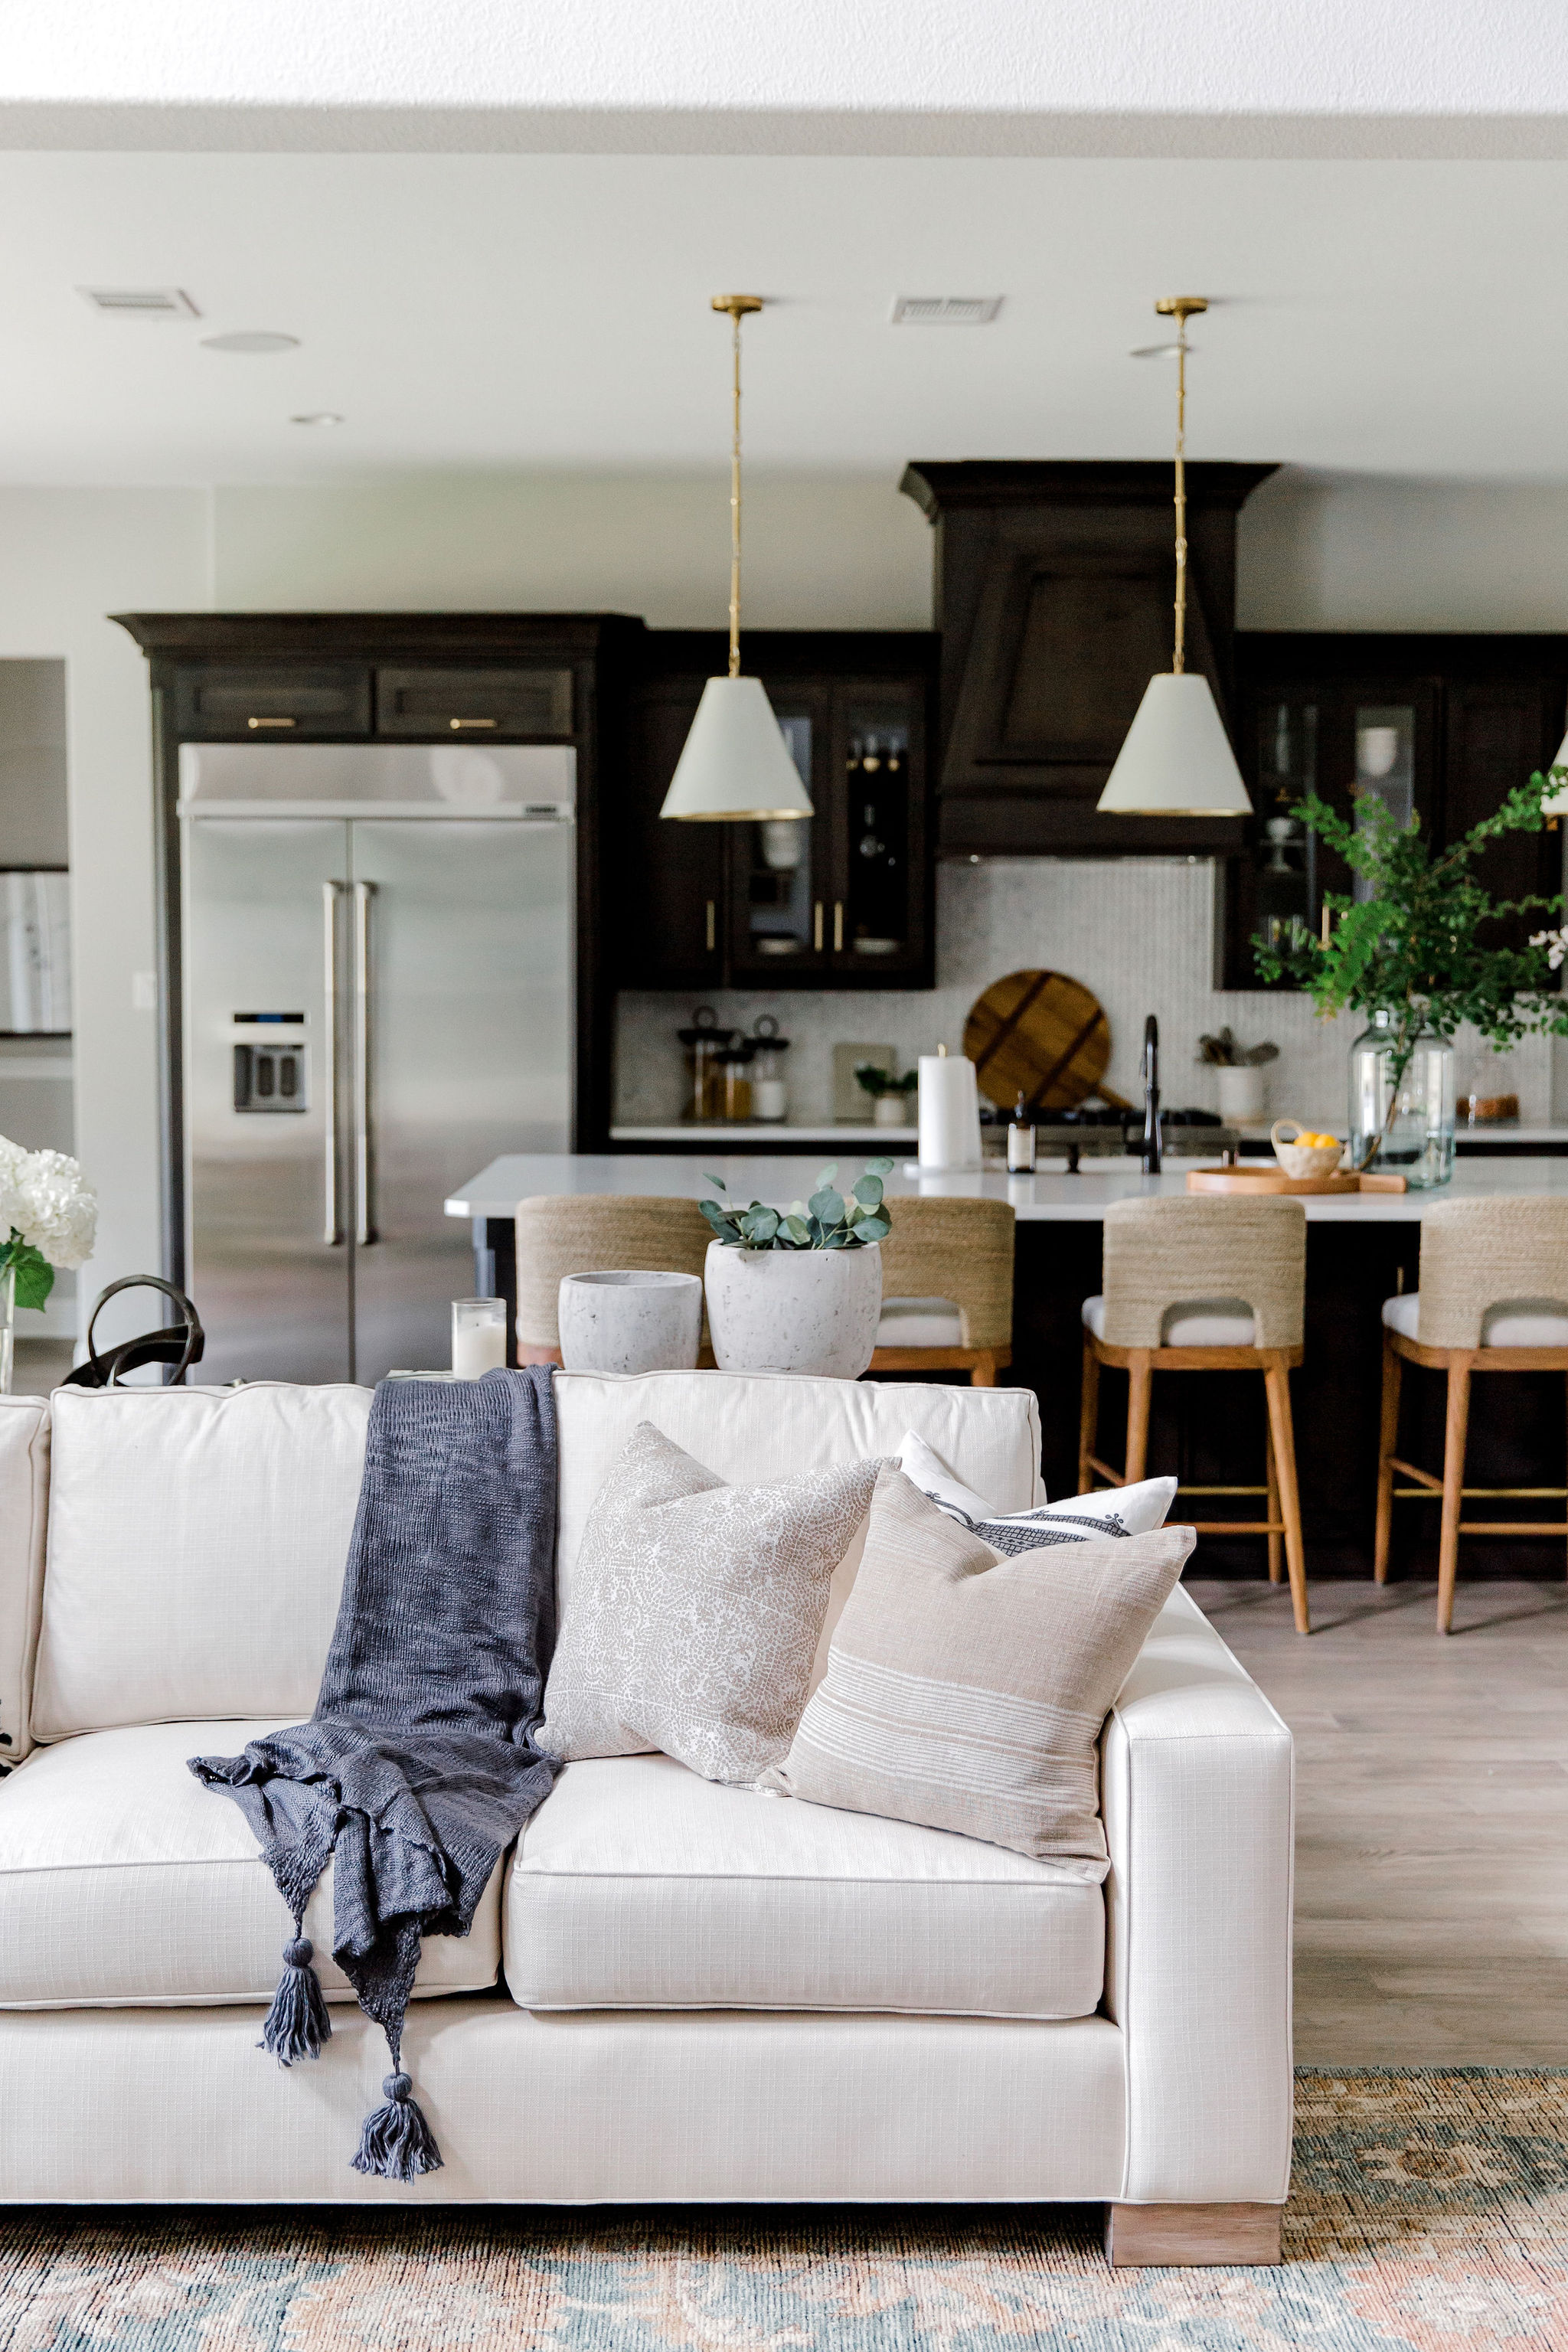 Kitchen design with brass pendants, seag